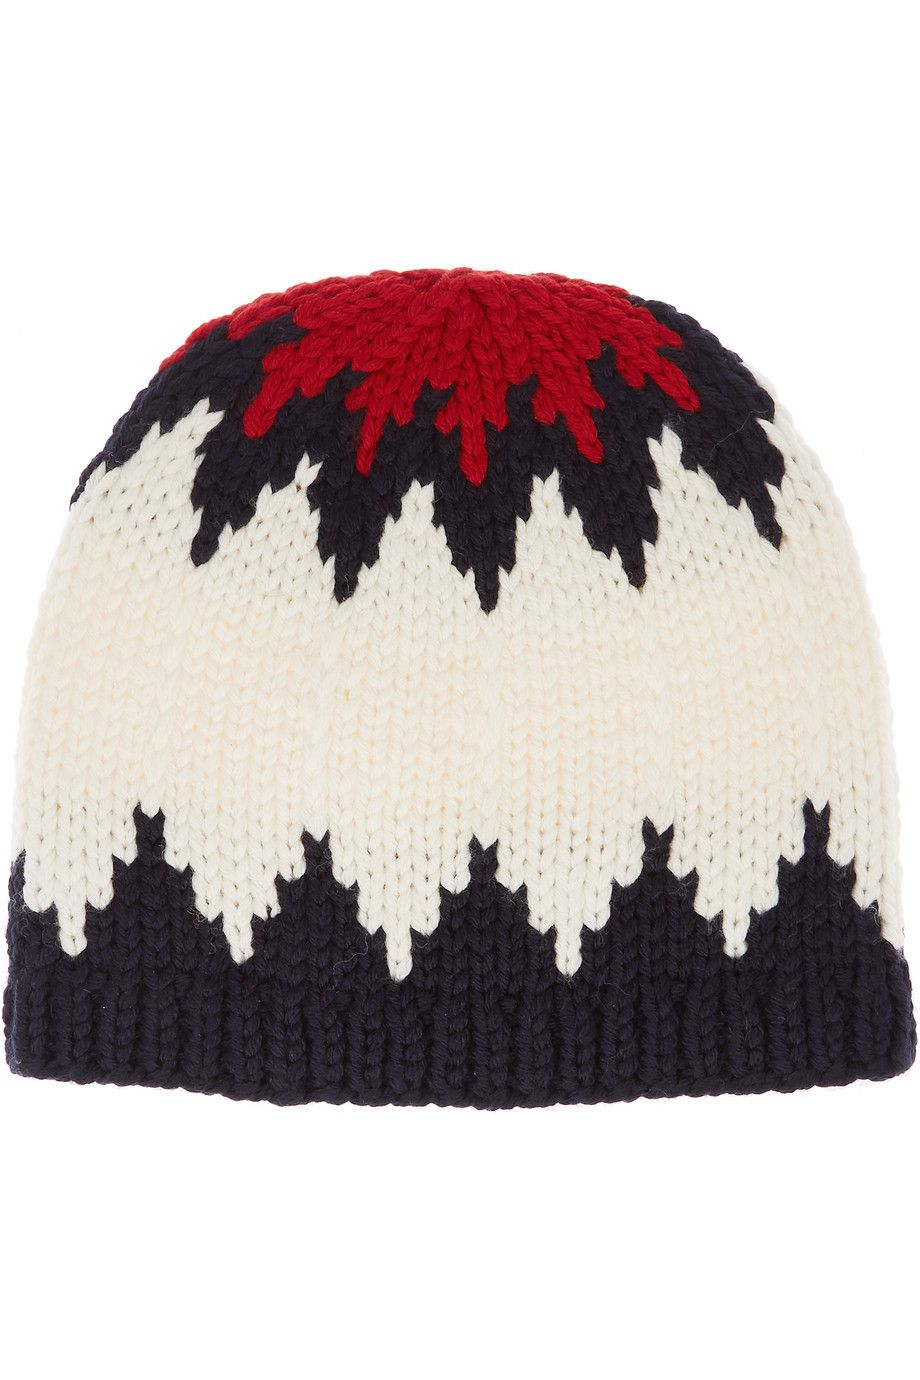 Shop on-sale Chloé Snow Capsule intarsia wool beanie. Browse other discount  designer Hats   more on The Most Fashionable Fashion Outlet f174e12d7efe